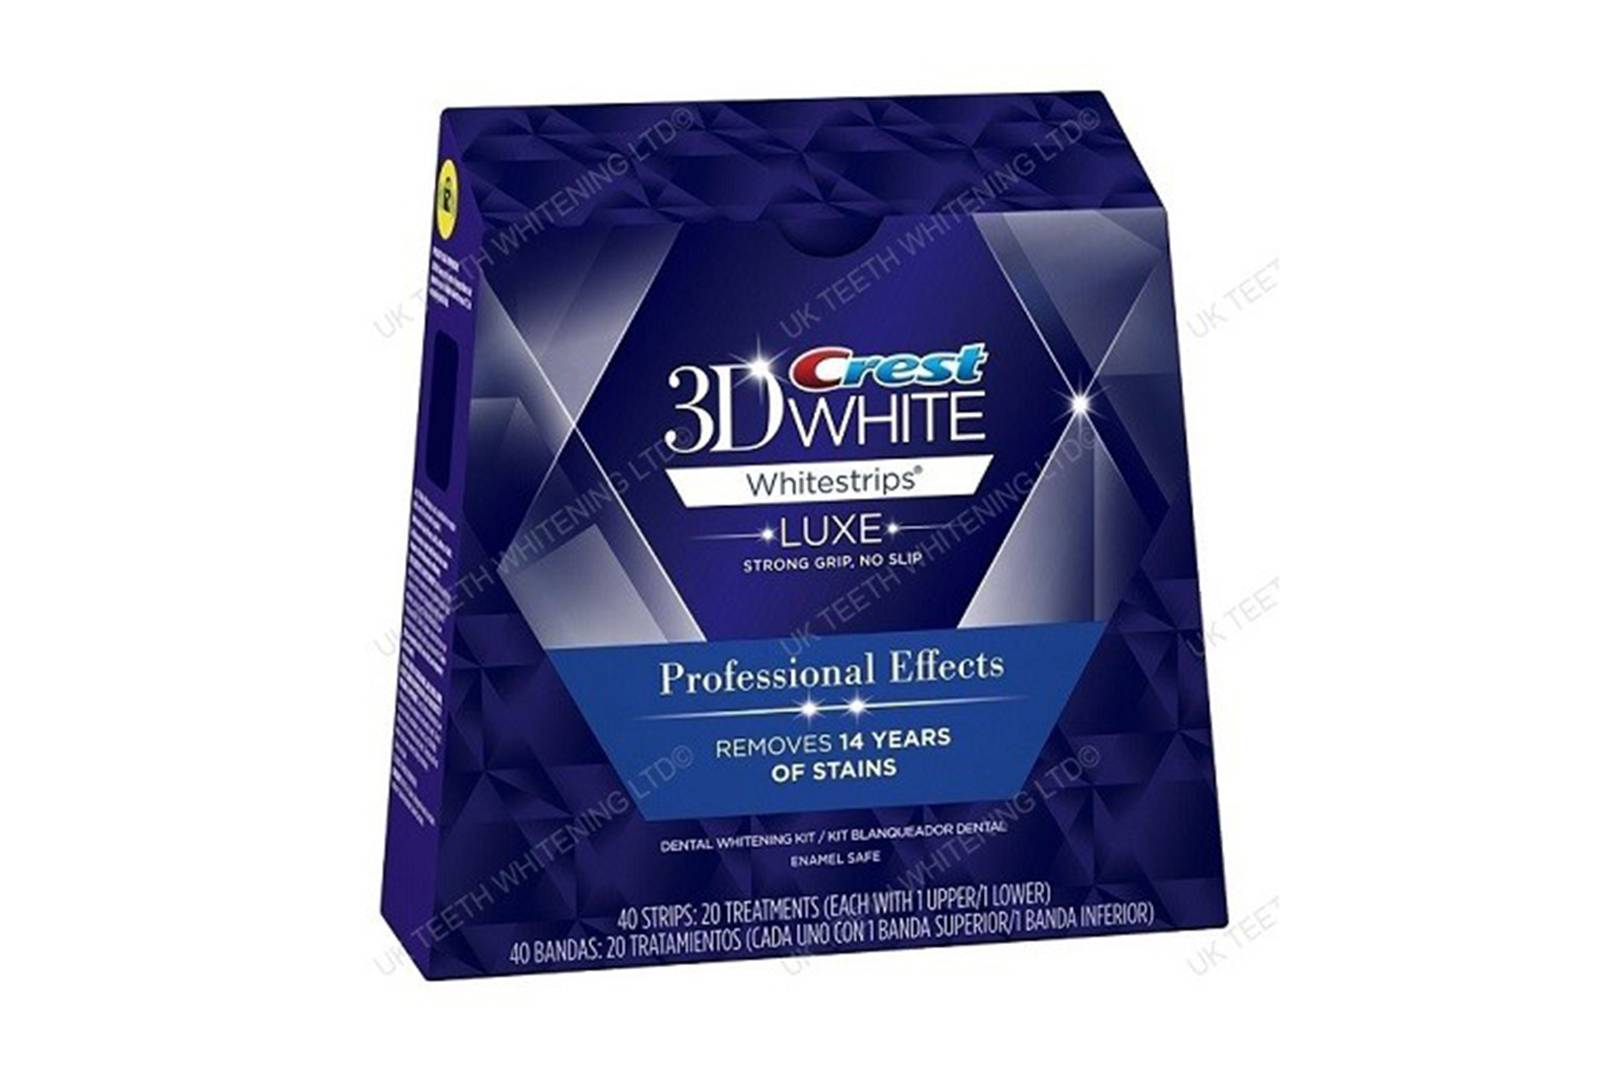 Crest 3d Teeth Whitening Strips Review 1 Hour Express And